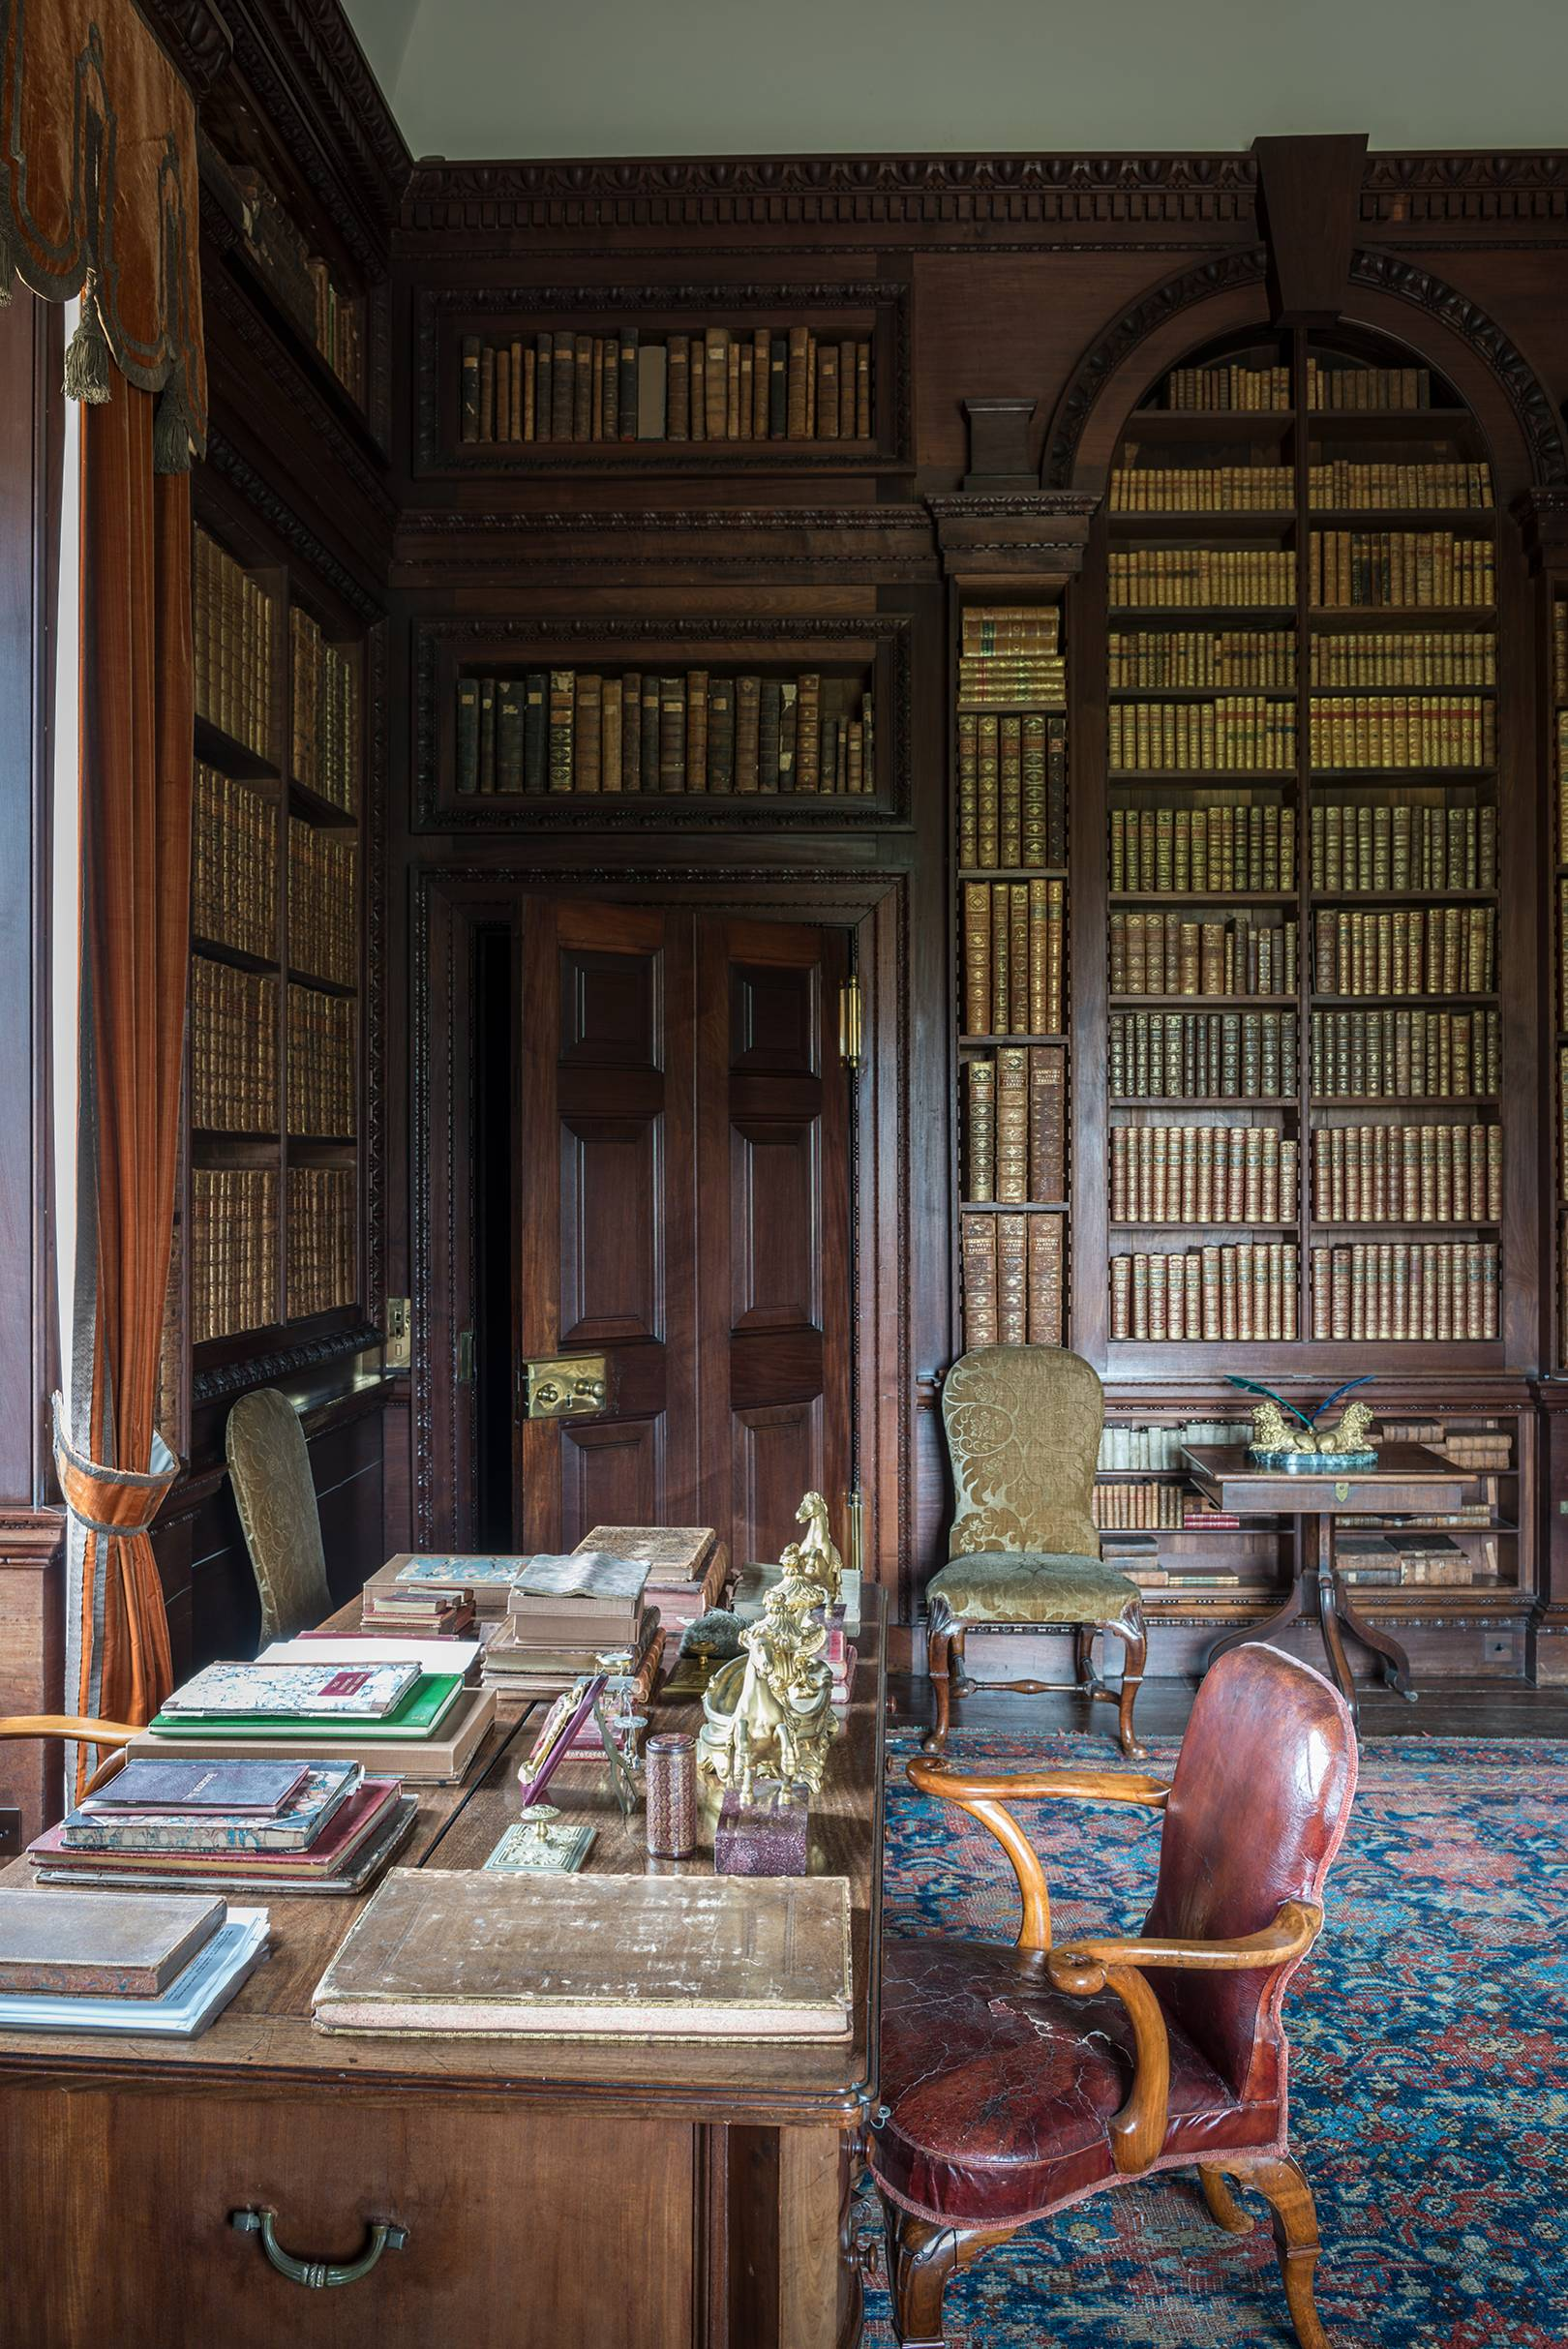 The hidden beauty of country house libraries